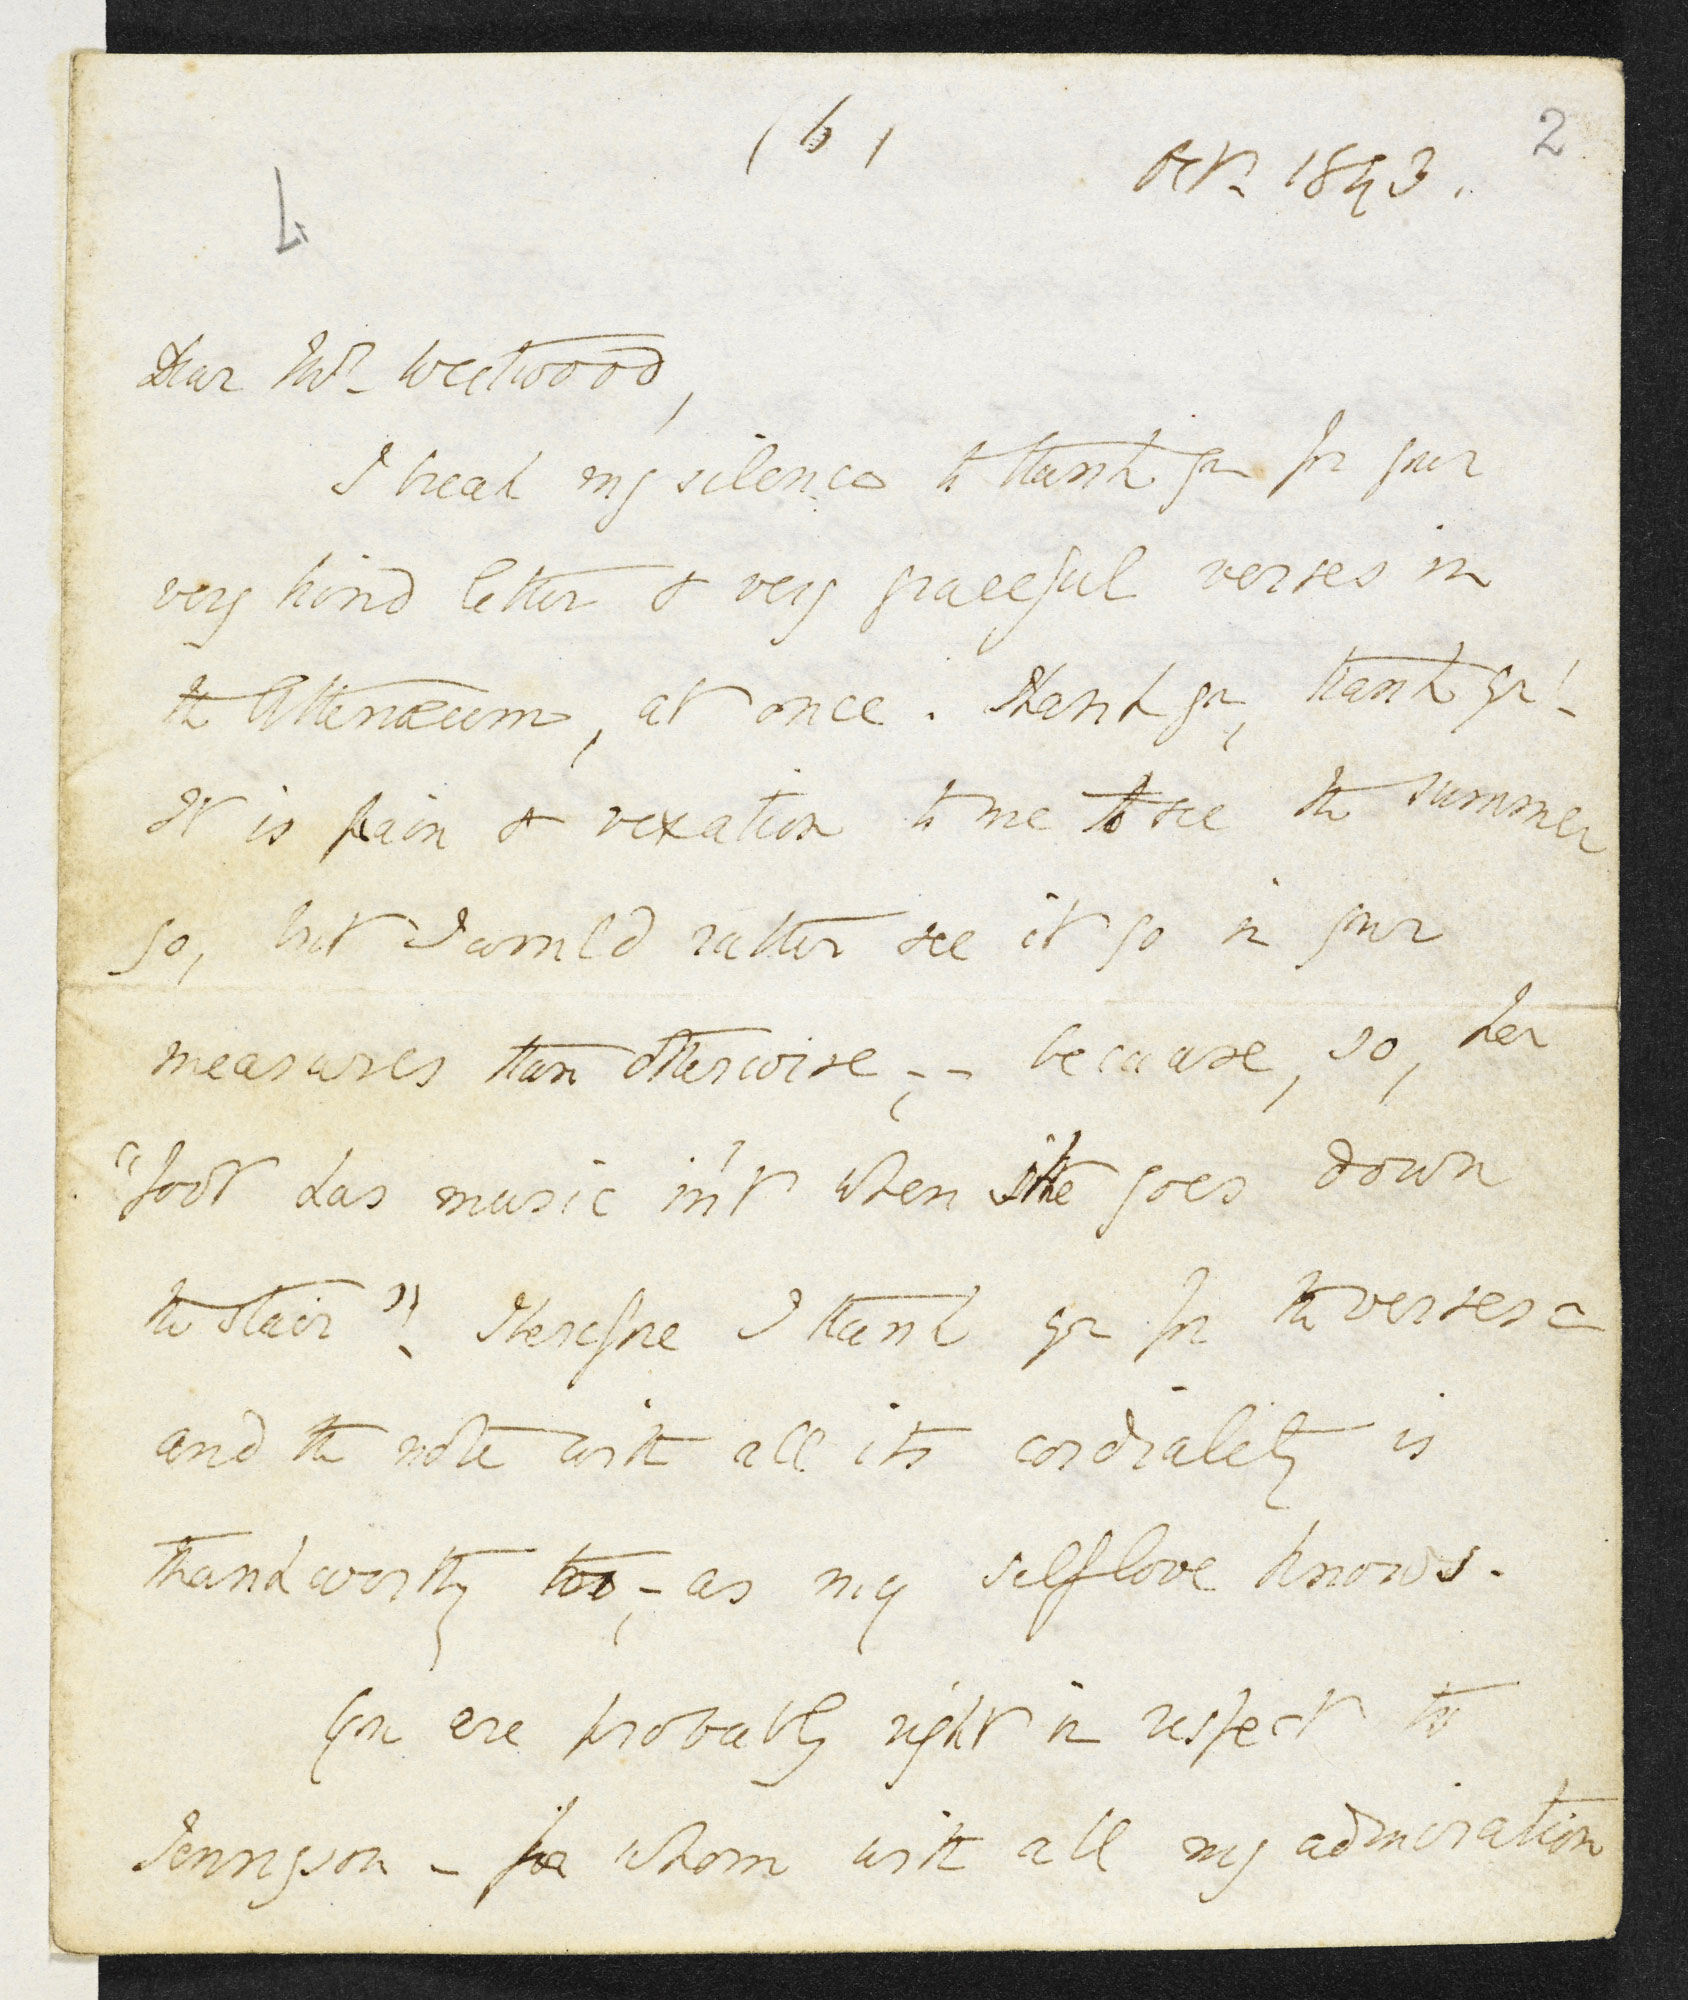 Letters from Elizabeth Barrett Browning to Thomas Westwood, 1843-53